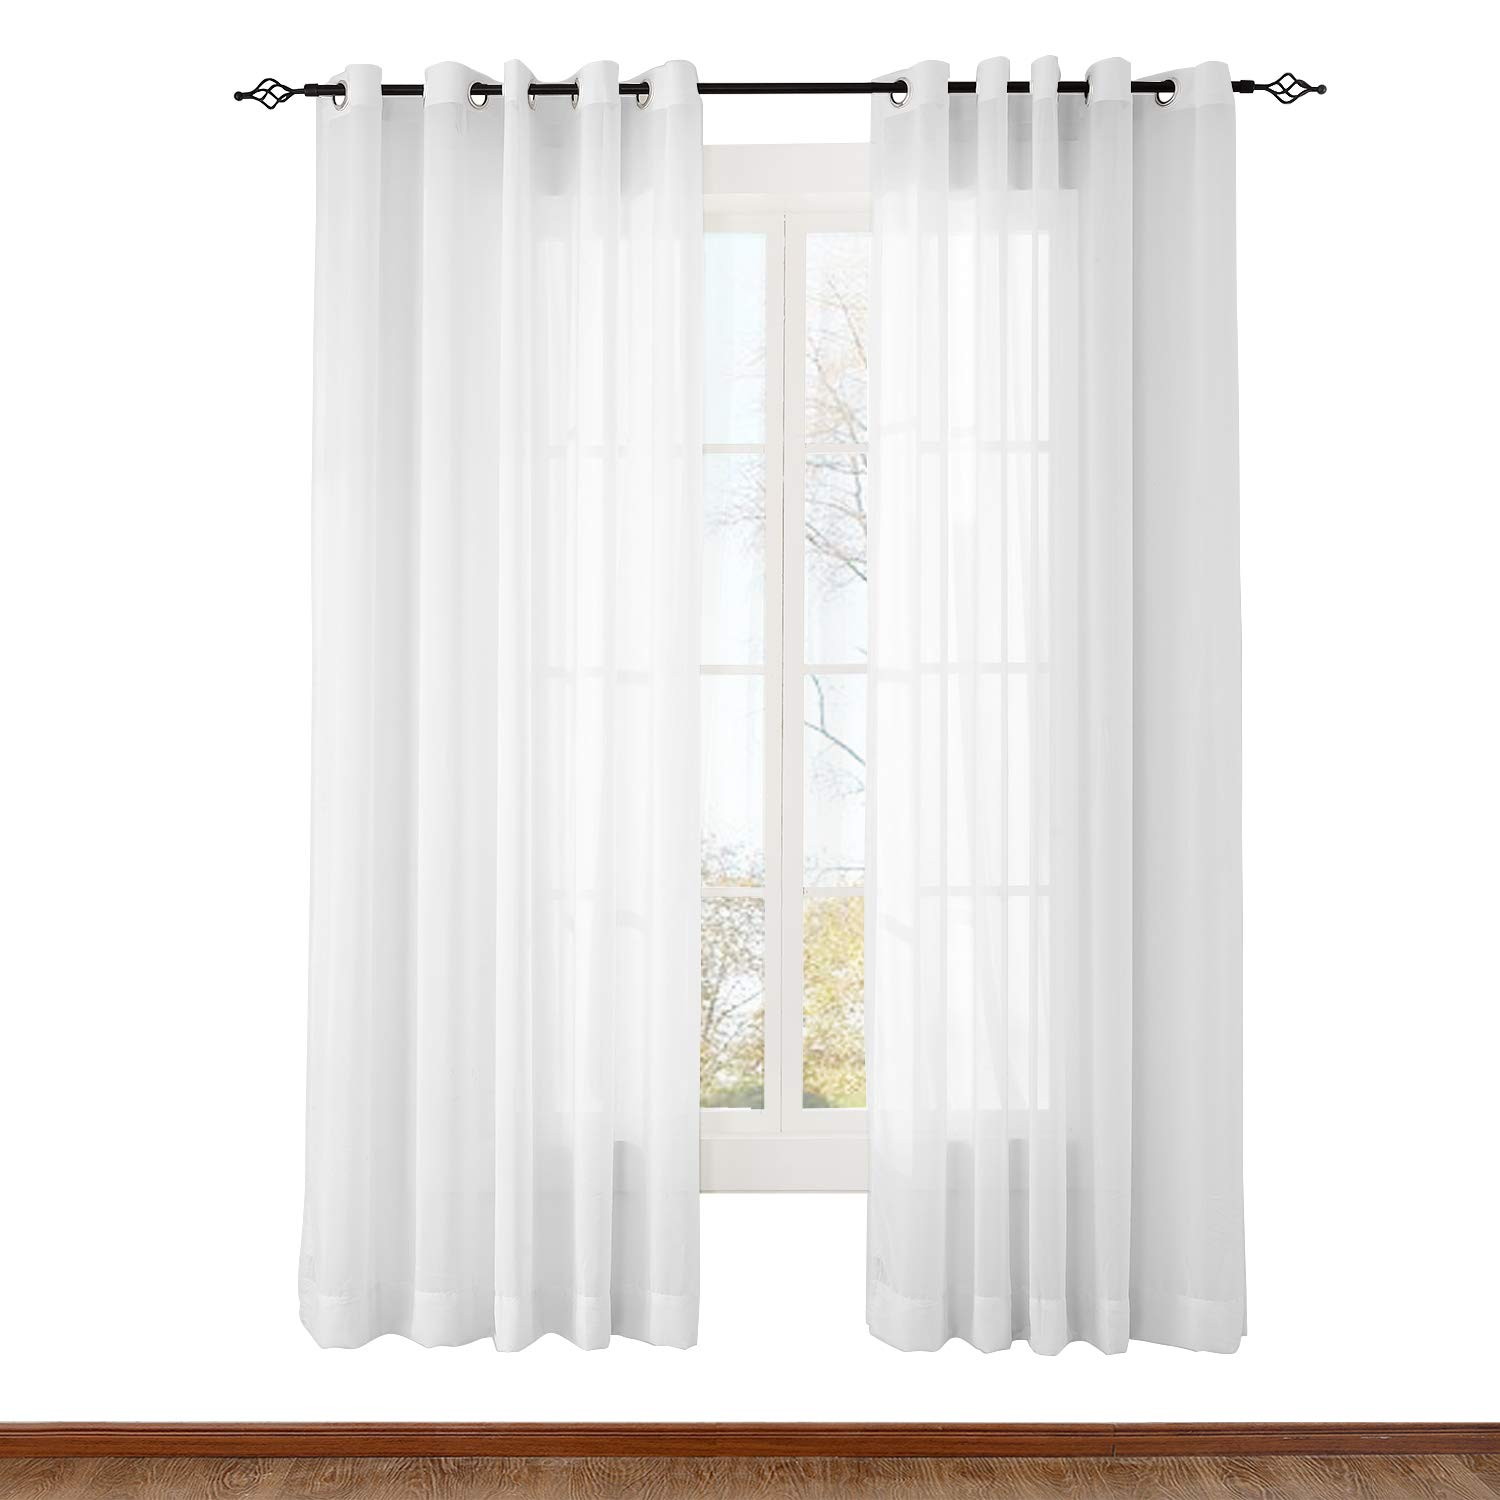 ChadMade Indoor Outdoor Solid Sheer Curtain Nickel Grommet White 84'' W X 84'' L Wide Opulent Voile Drapes (1 Panel)